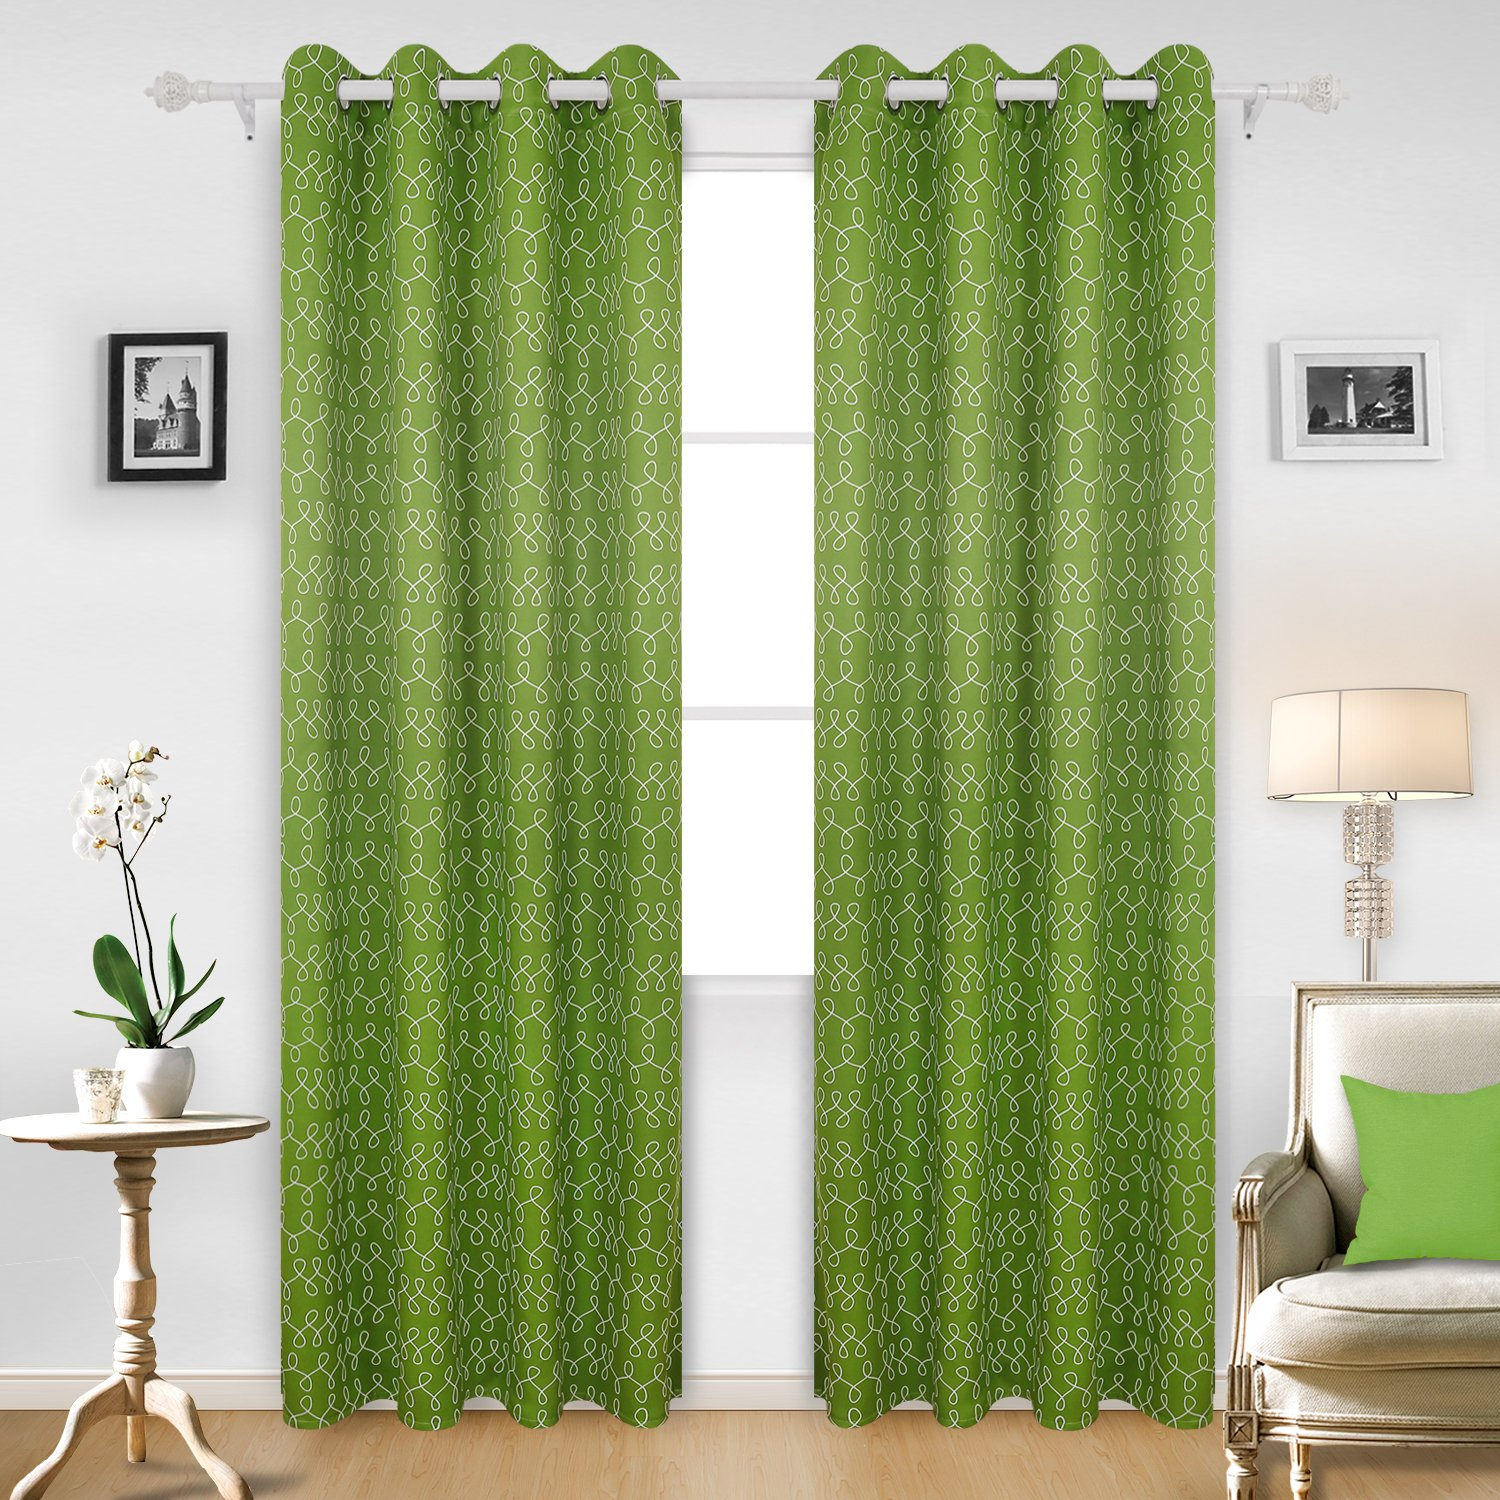 Deconovo Decorative Geometrical Pattern EightPrinted Thermal Insulated Blackout Eyelet Curtains for Boys Room with Two Tiebacks 46 x 72 Inch Pair Green